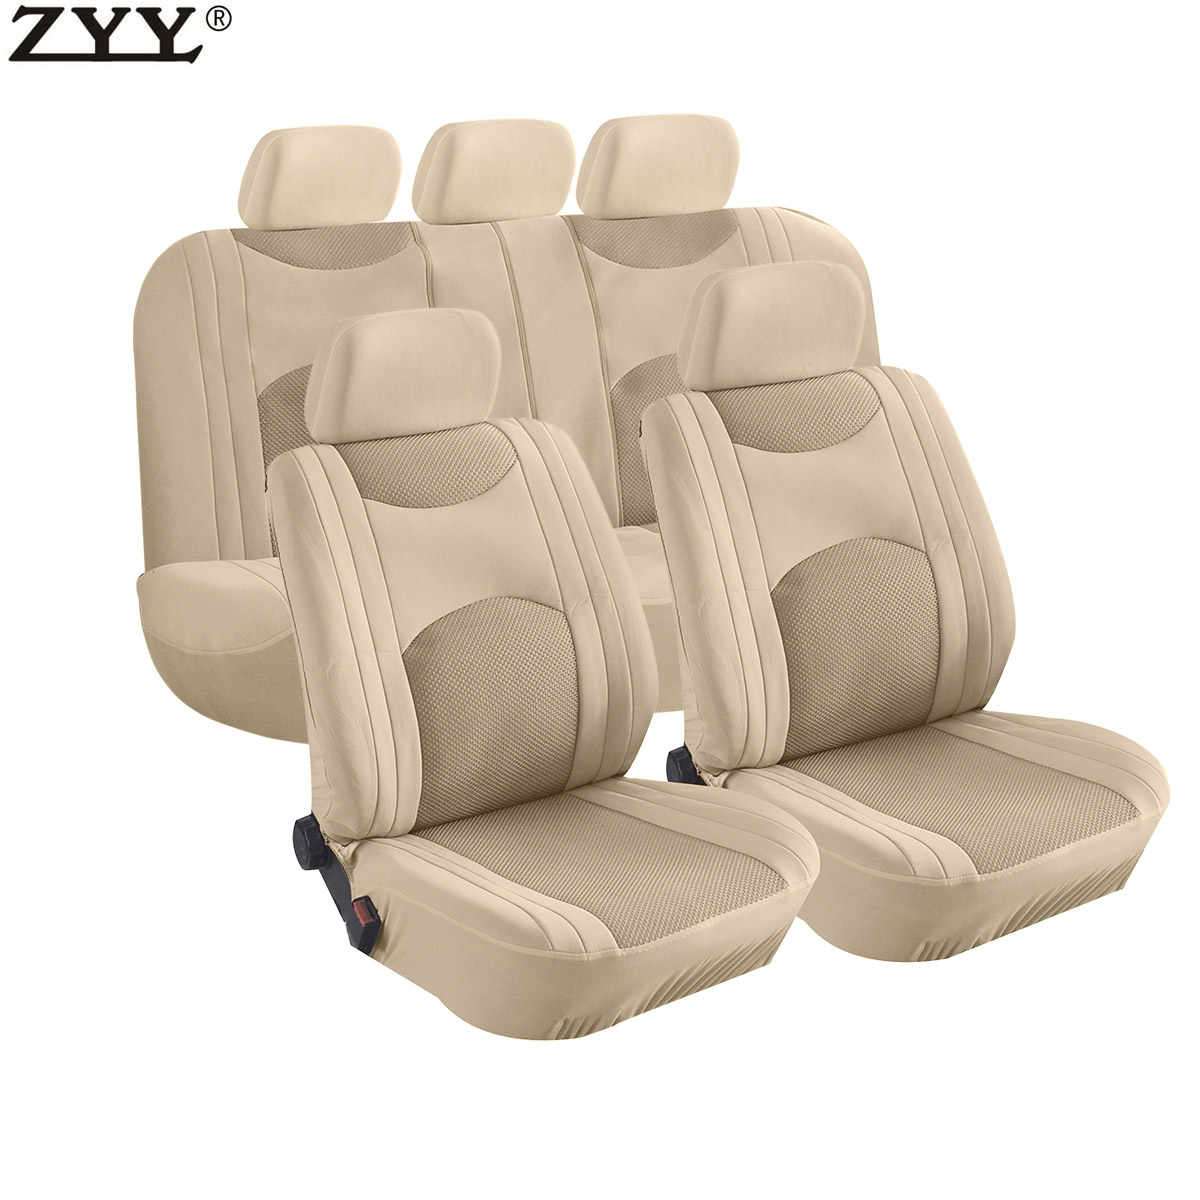 Split Bench Seat Covers ~ Pcs new universal beige airbag split bench headrest front